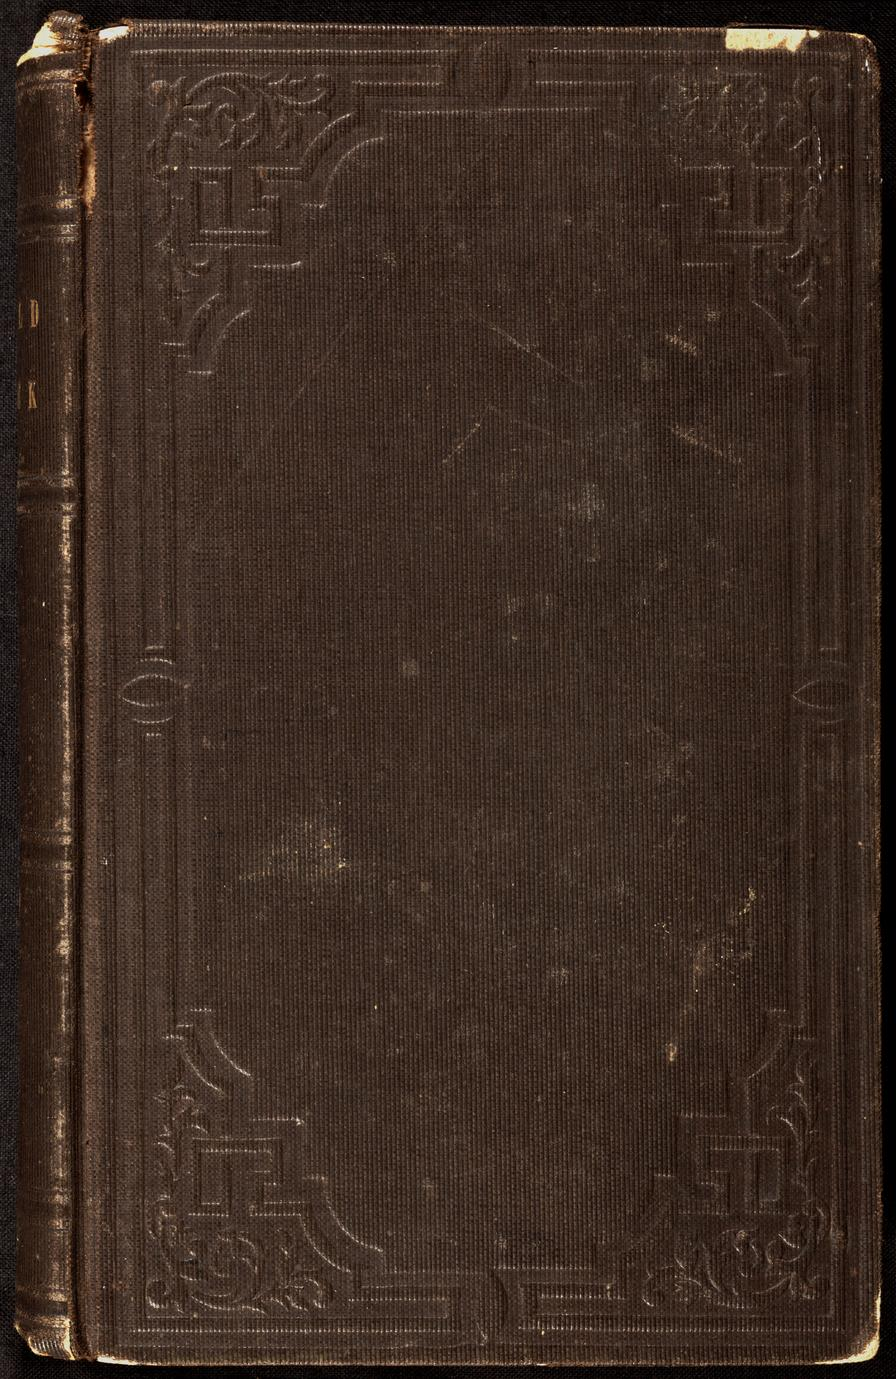 Wild Jack ; or, The stolen child : and other stories : including the celebrated Magnolia leaves (1 of 2)